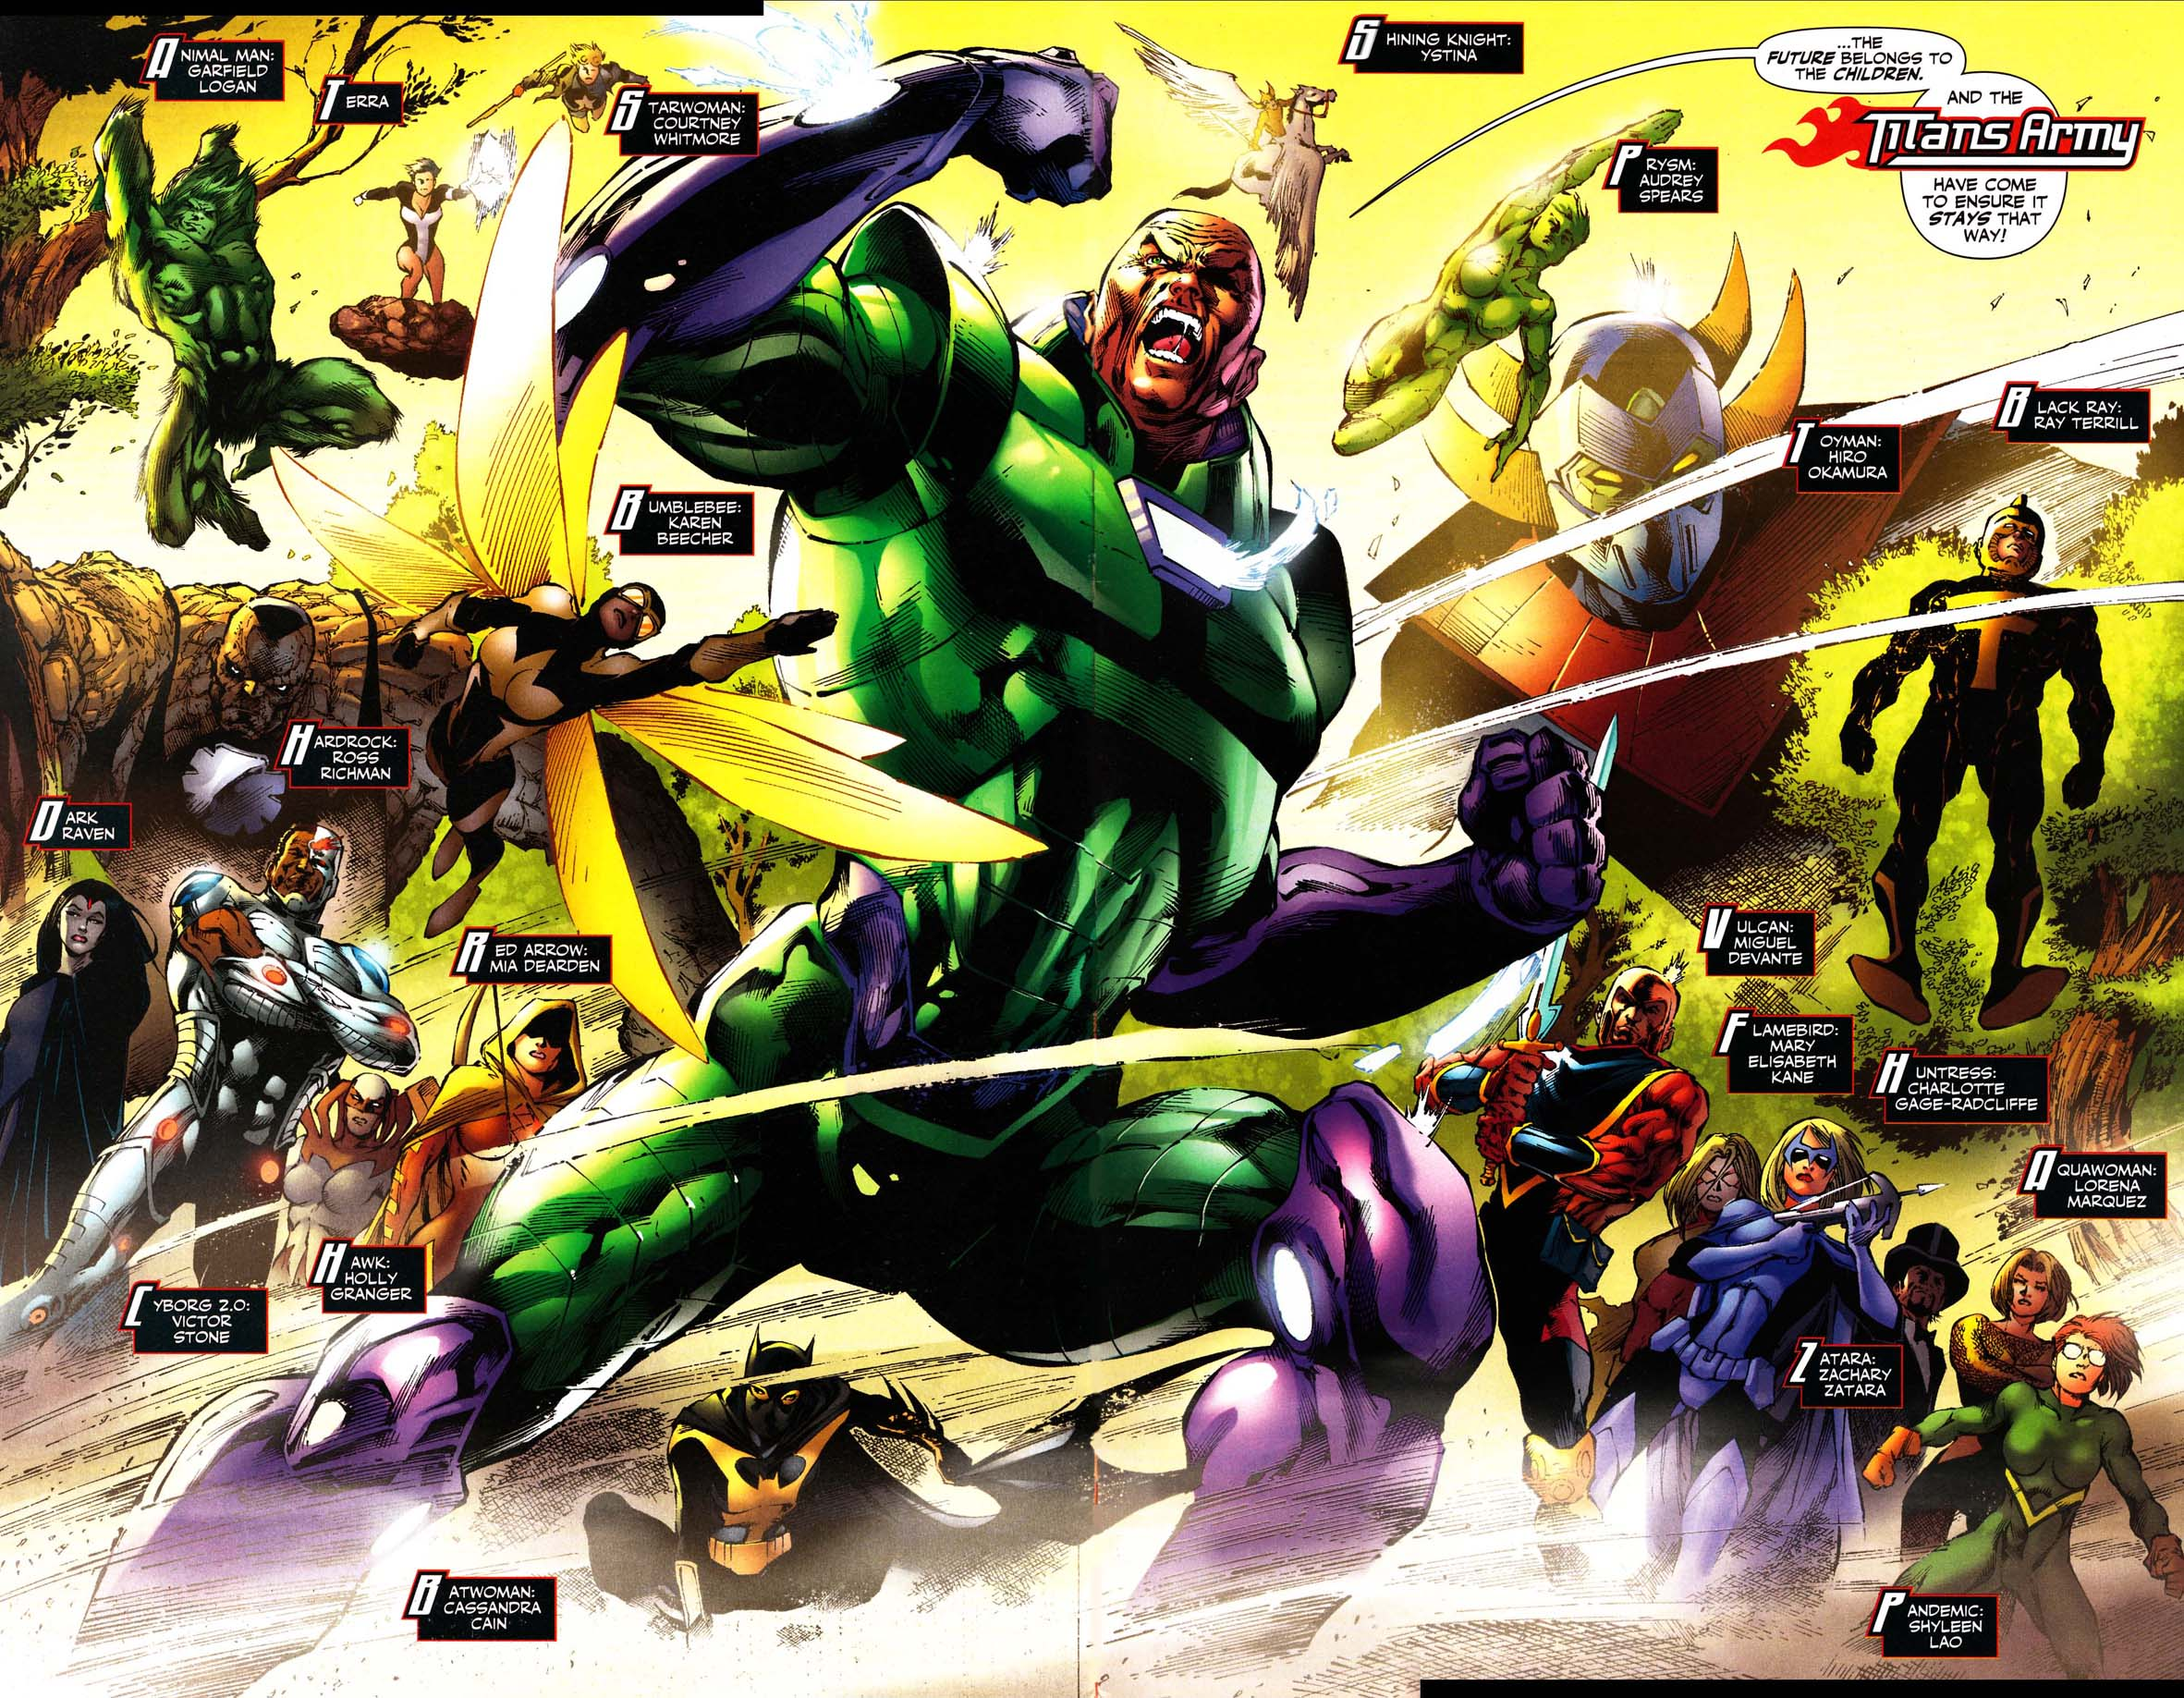 Featured on:Teen Titans (53), Titans Army